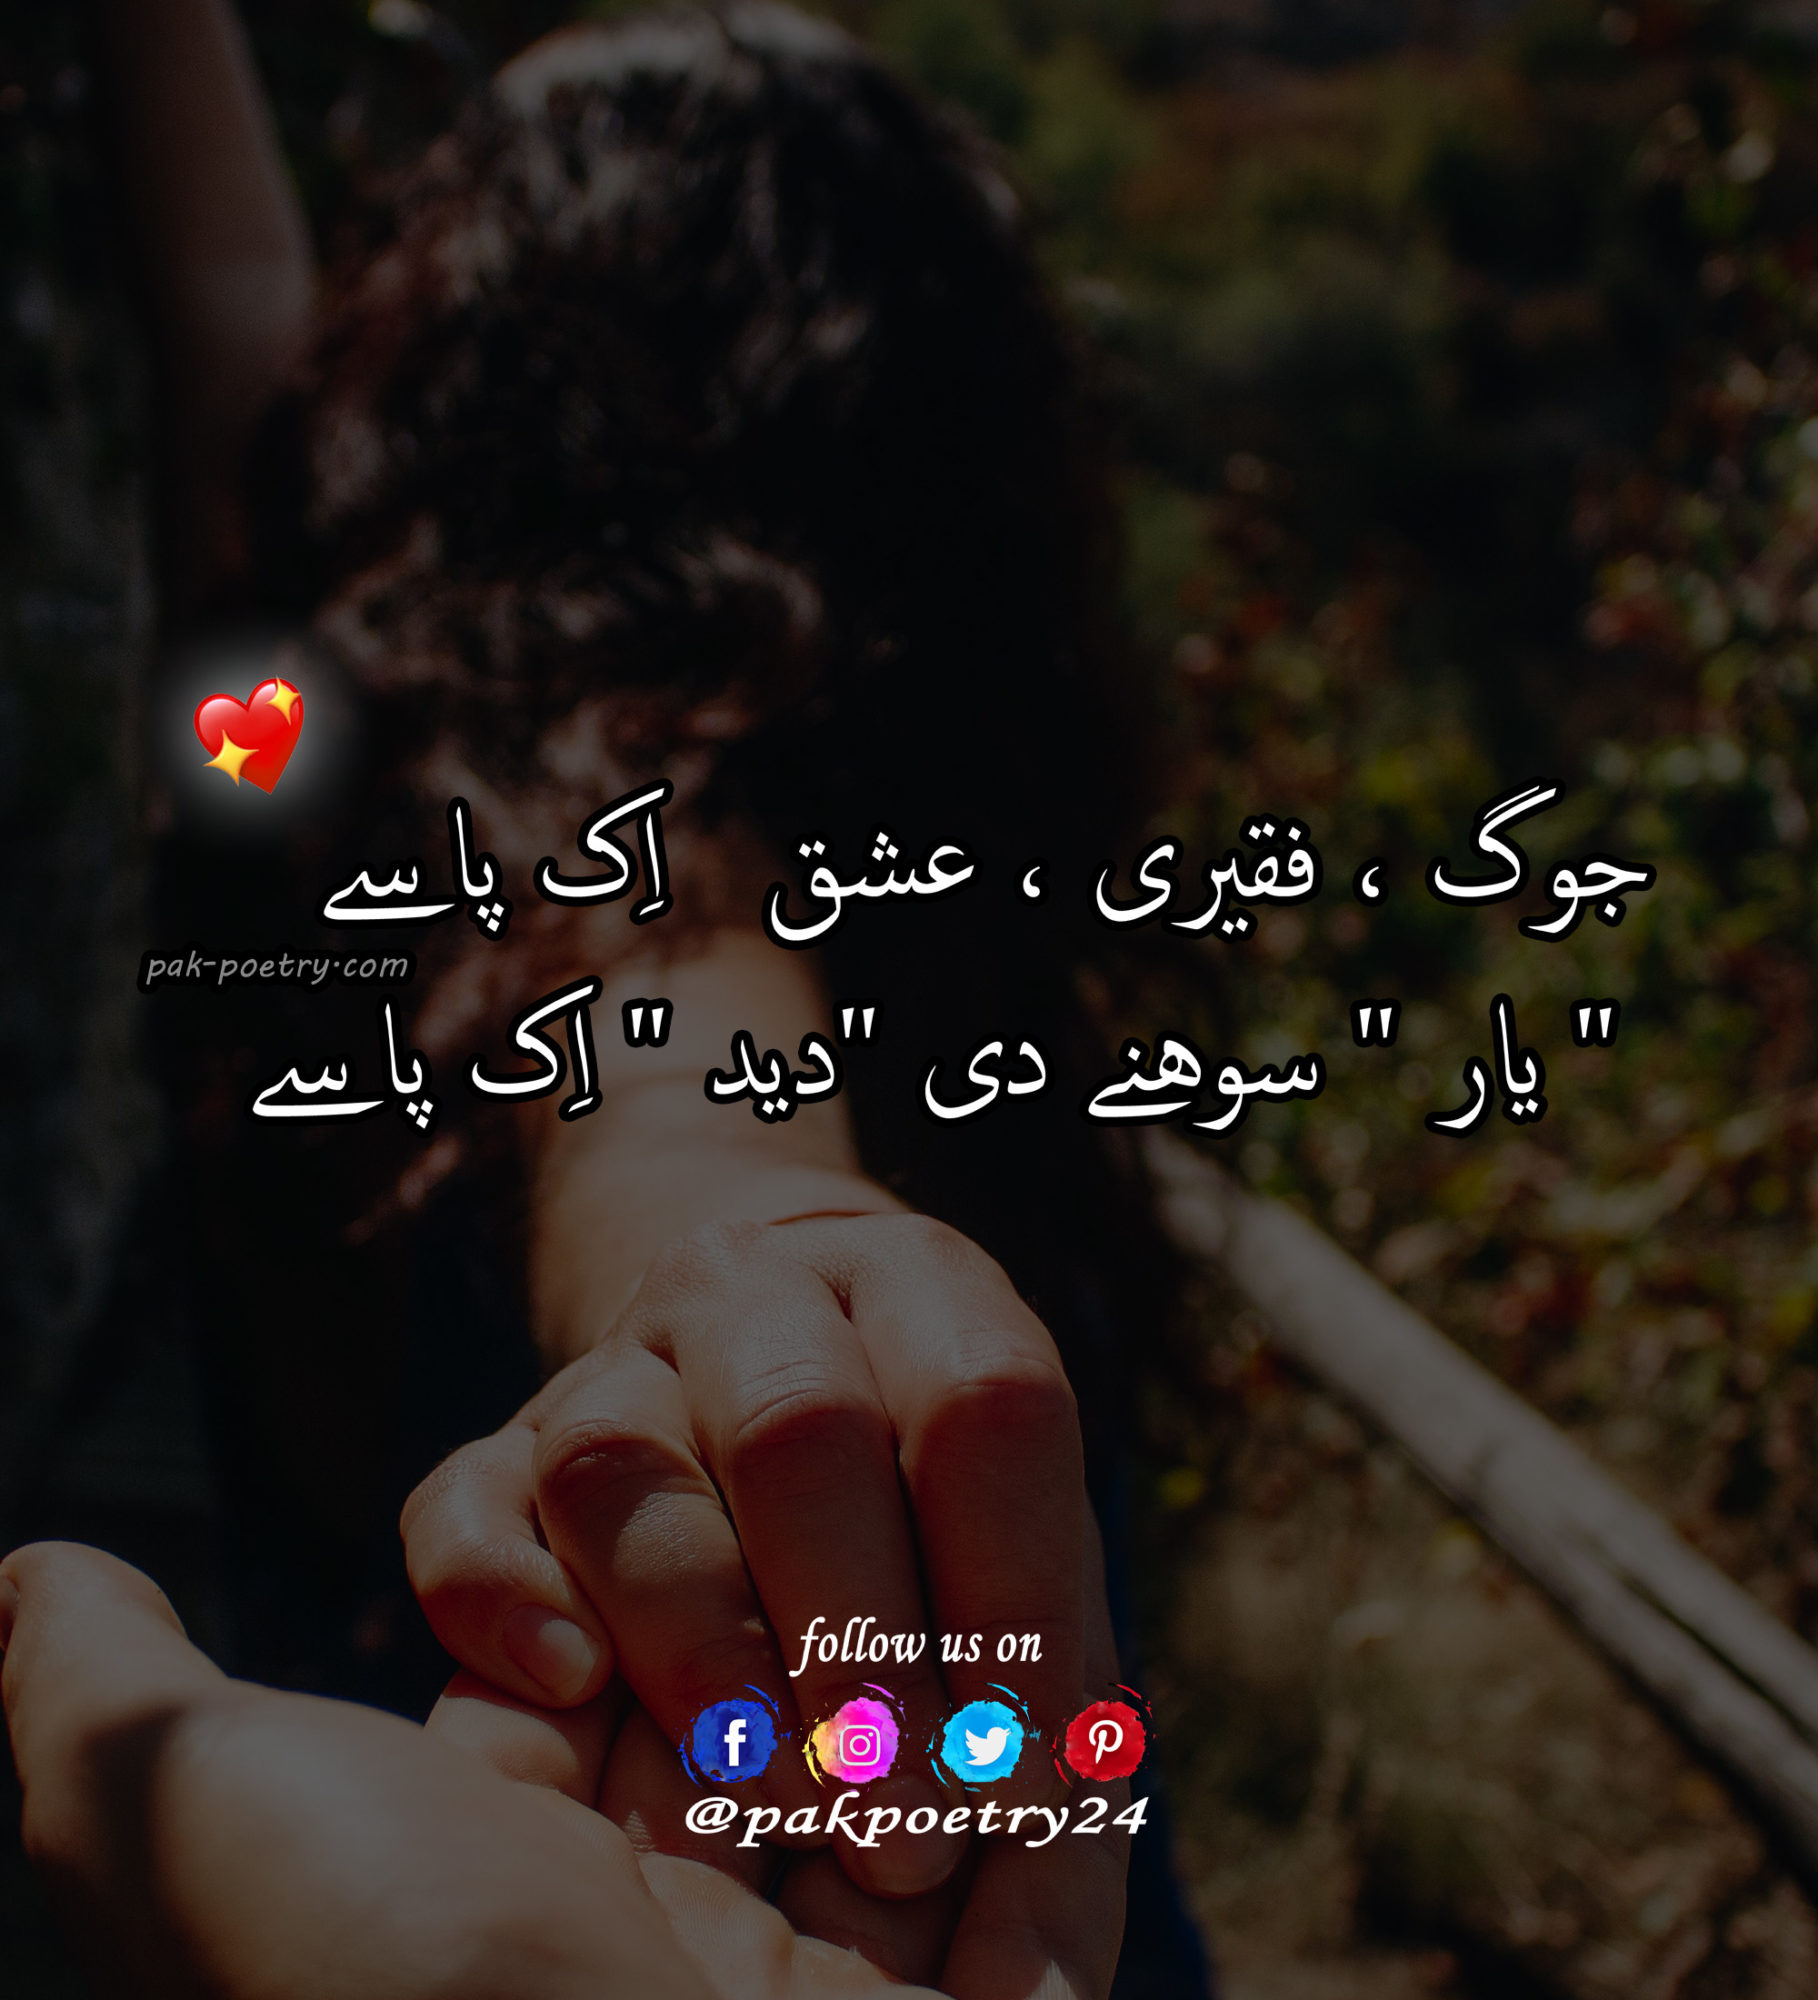 romantic poetry, urdu romantic poetry, romantic pics poetry, romantic love poetry, romantic poetry pics, Love poetry, love poetry in urdu, love poetry urdu, urdu love poetry, poetry love, love poetry pics, love poetries, lovepoetry, Poetry in urdu, urdu poetry, poetry urdu, punjabi poetry,